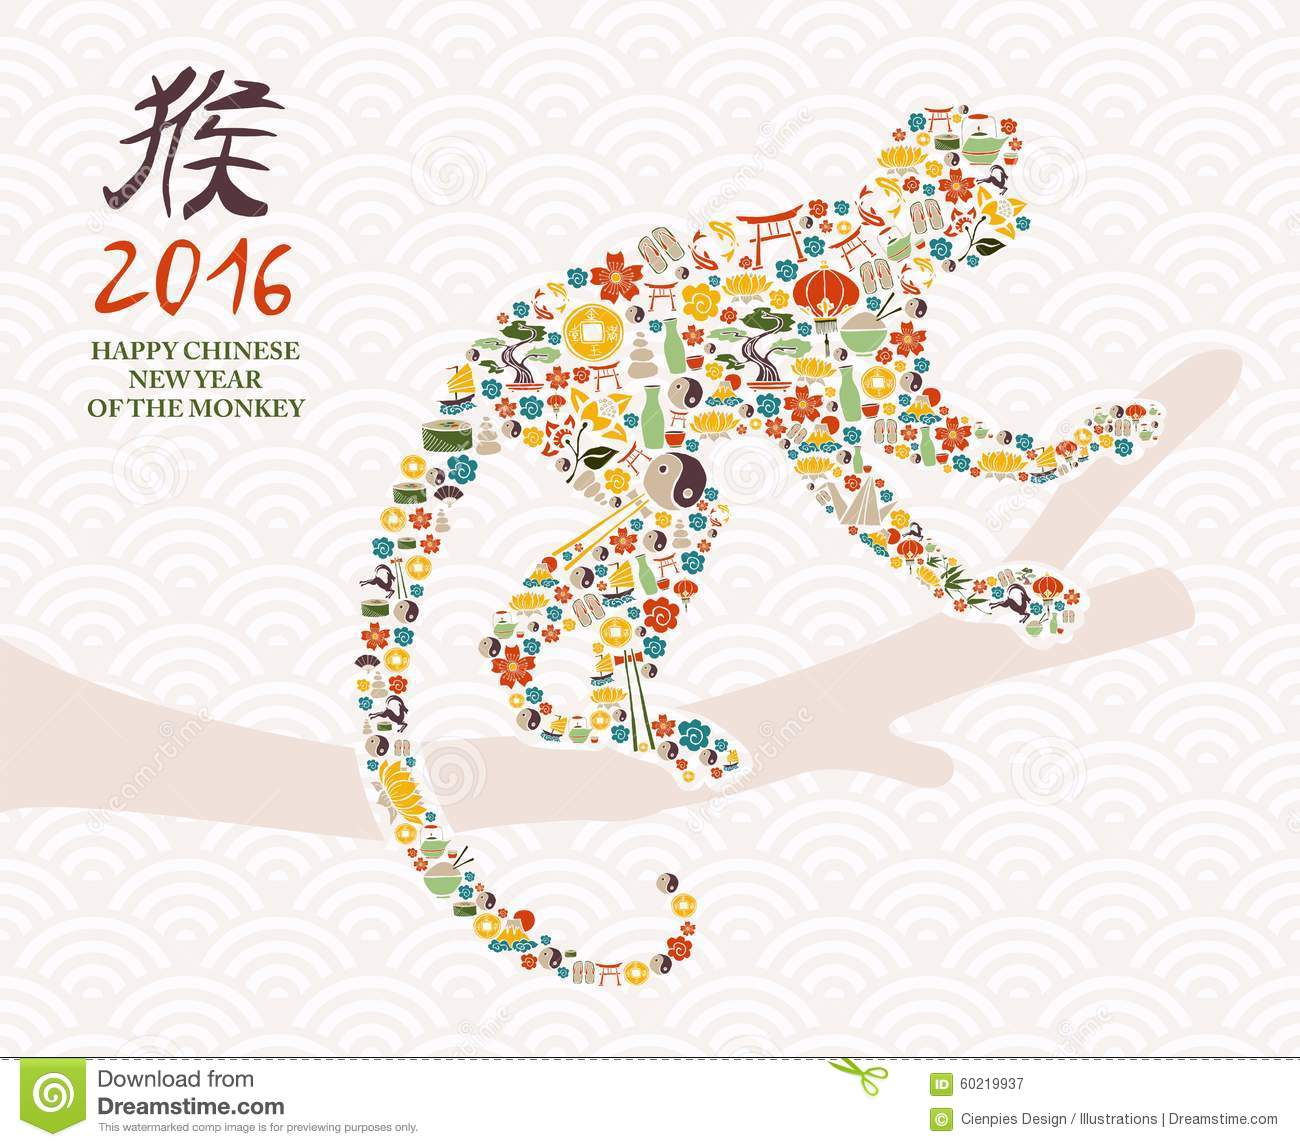 Monkey clipart icon new year banner 2016 Happy Chinese New Year Of Monkey Icons Card Stock Vector ... banner